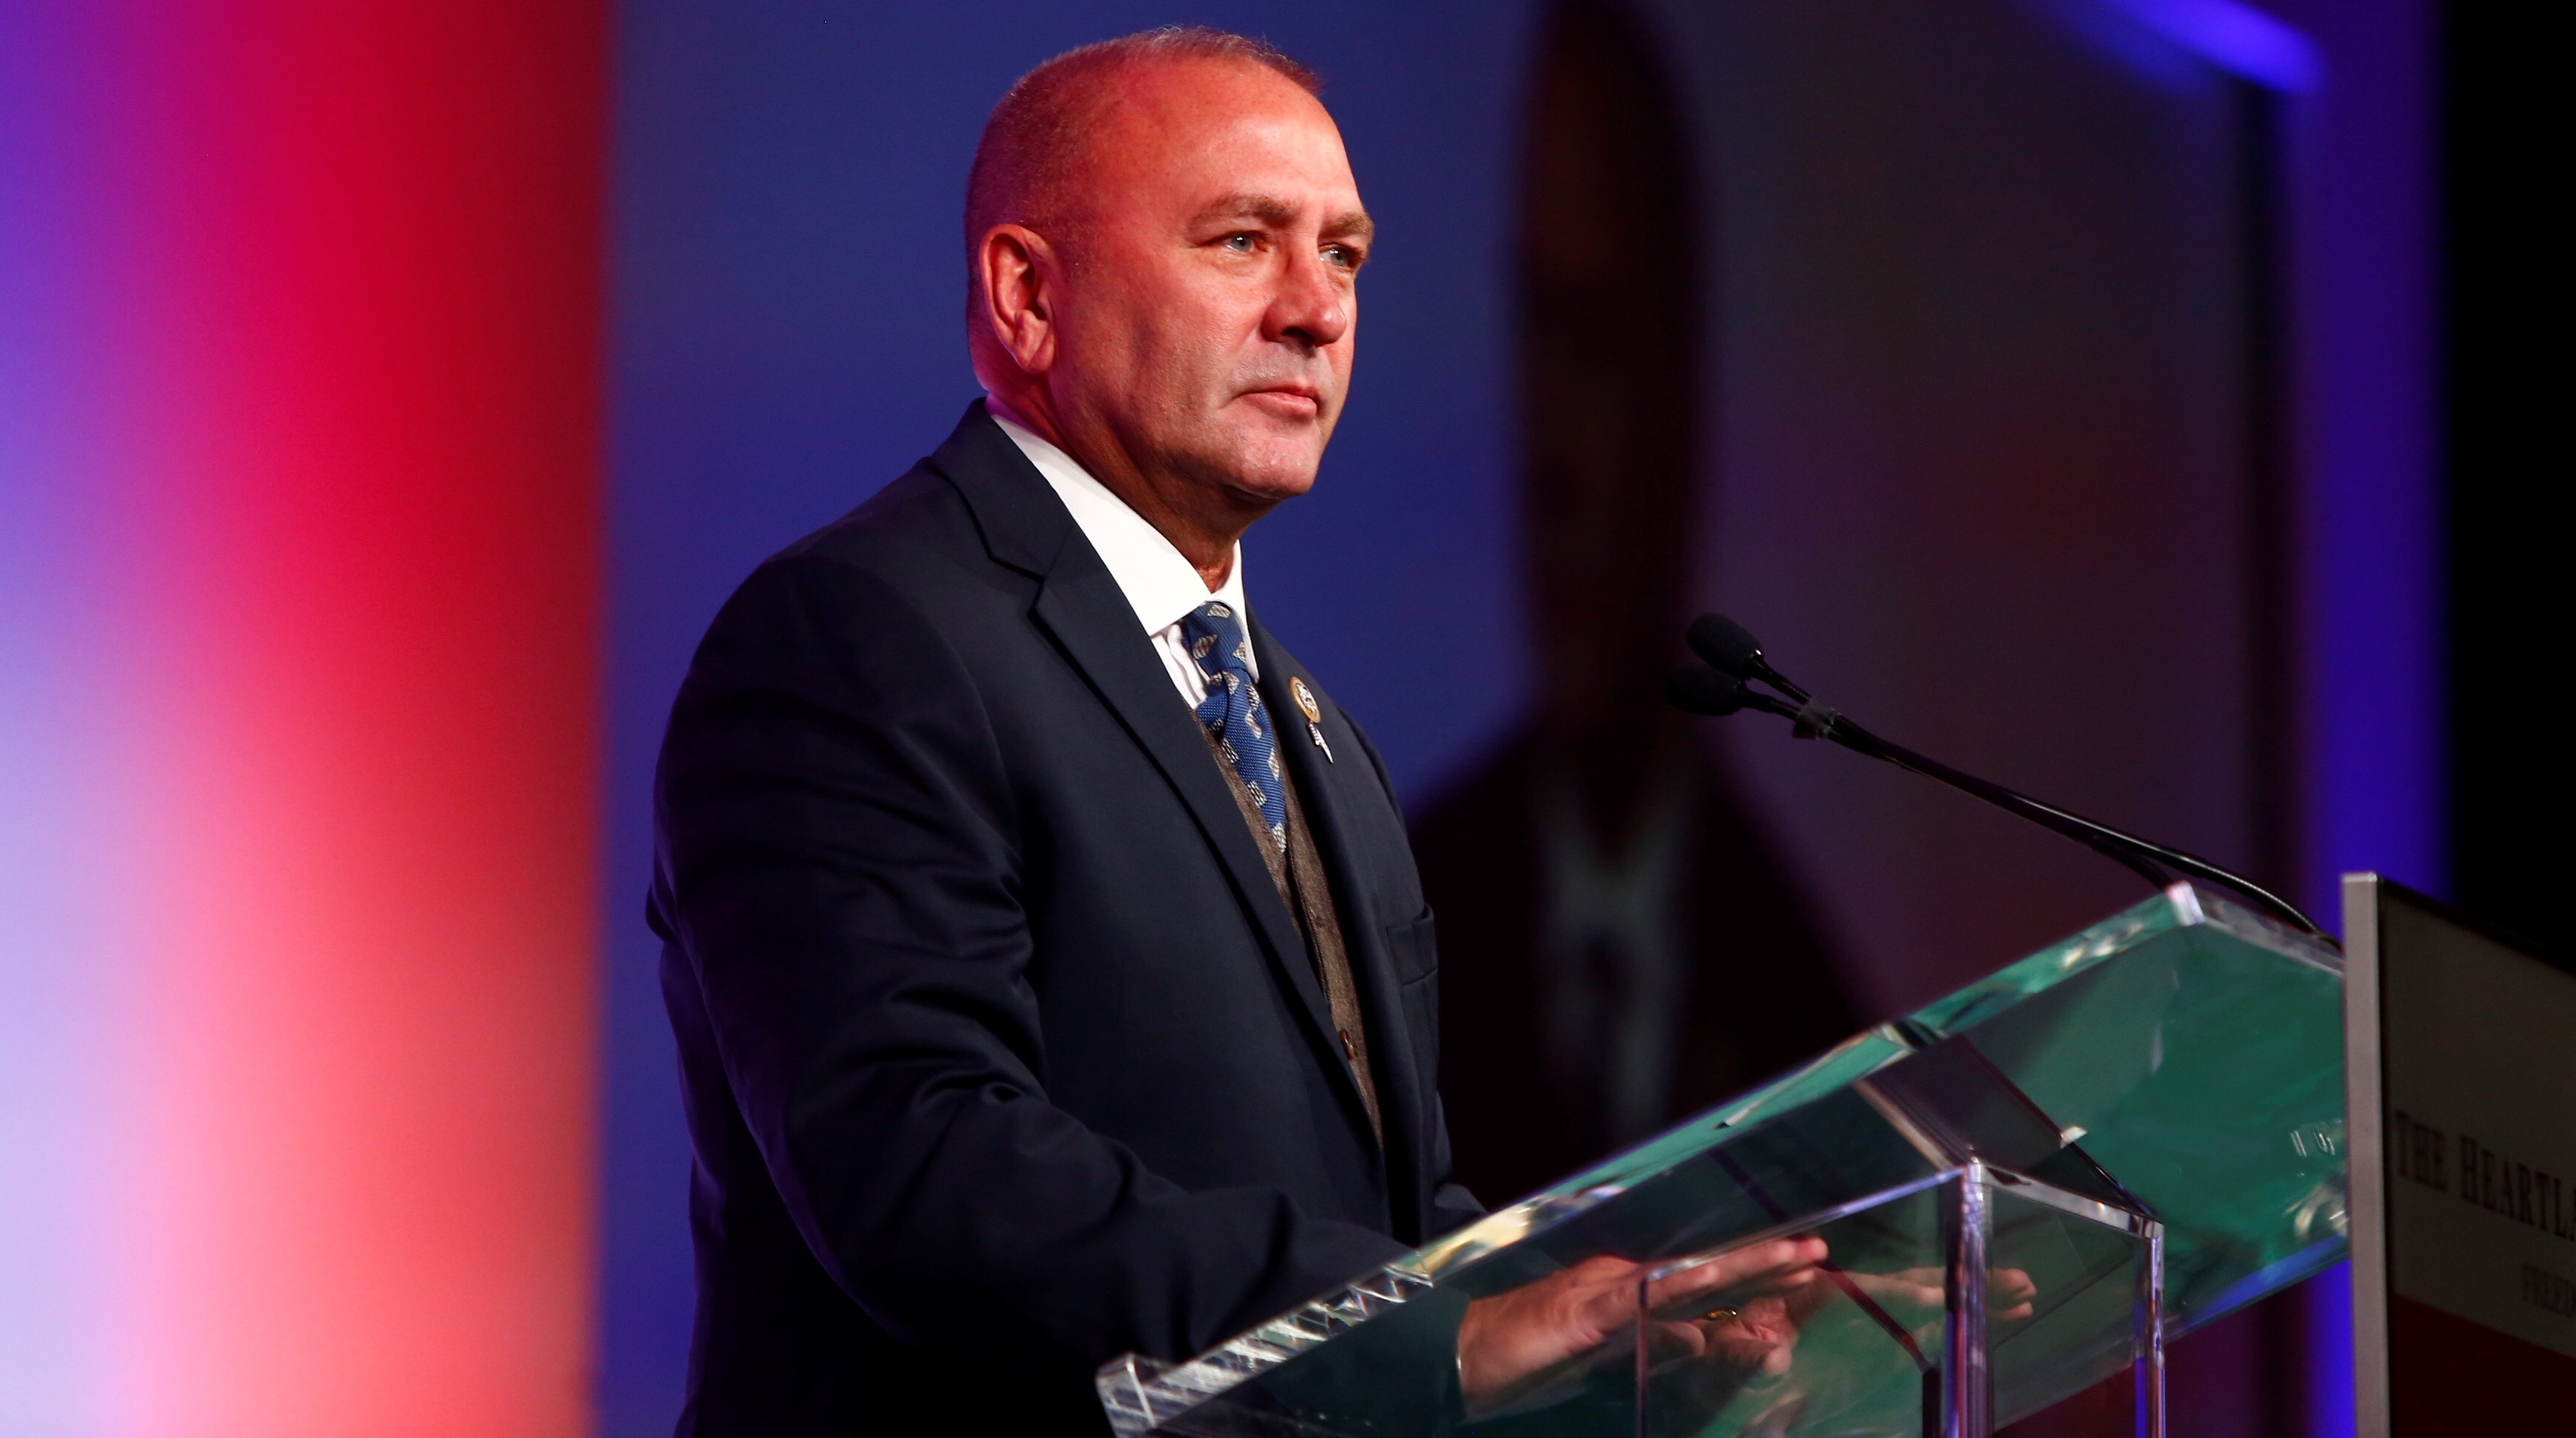 United States Representative Clay Higgins, 3rd District, Louisiana, speaks during the America First Energy Conference 2018 in New Orleans, Louisiana, U.S., August 7, 2018. Picture taken August 7, 2018. REUTERS/Edmund D. Fountain